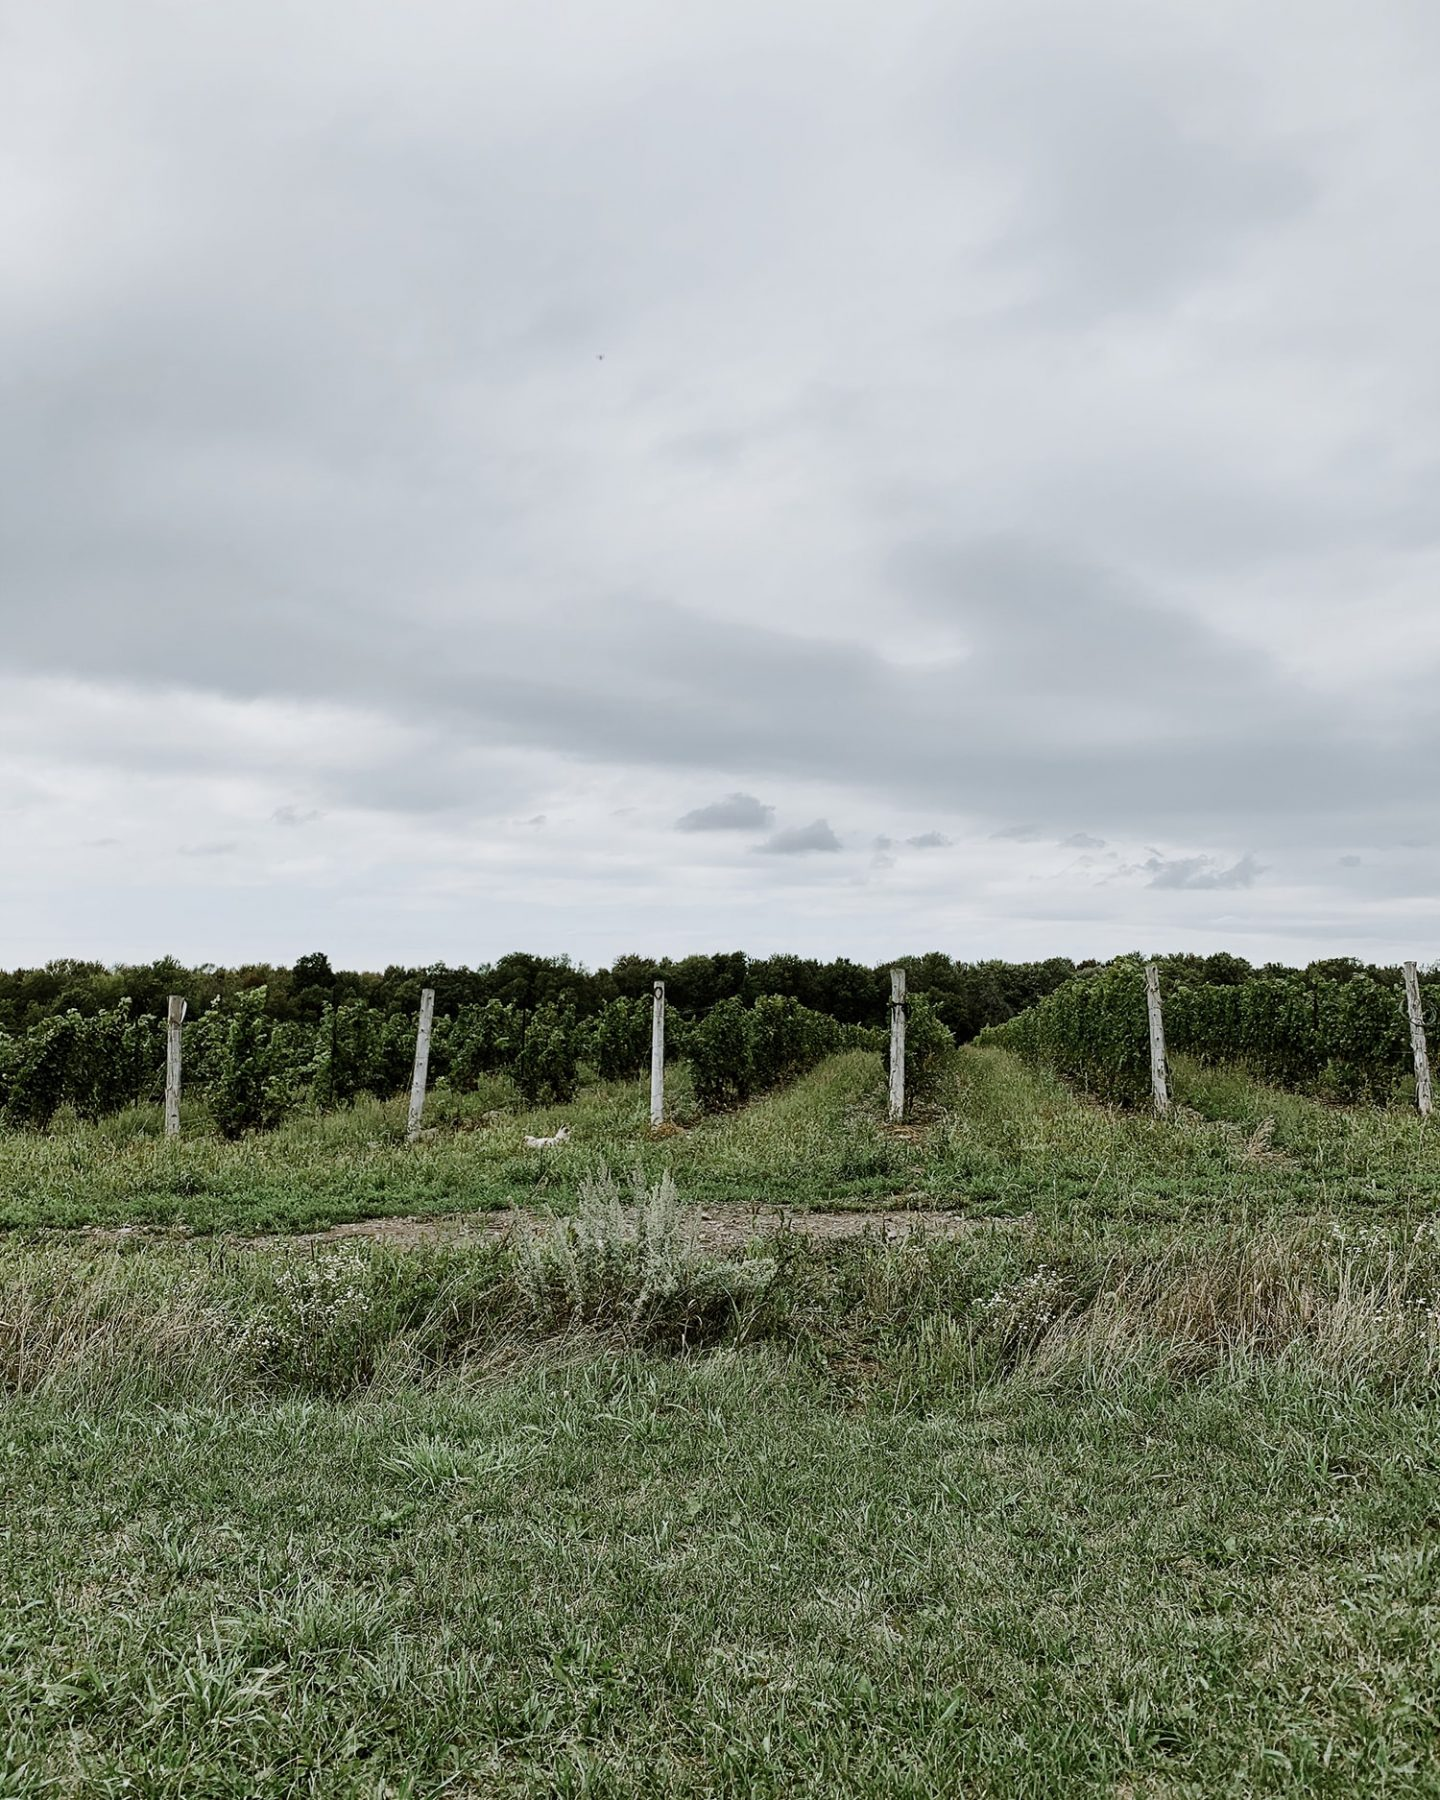 Hinterland Wine Company vineyards in Prince Edward County